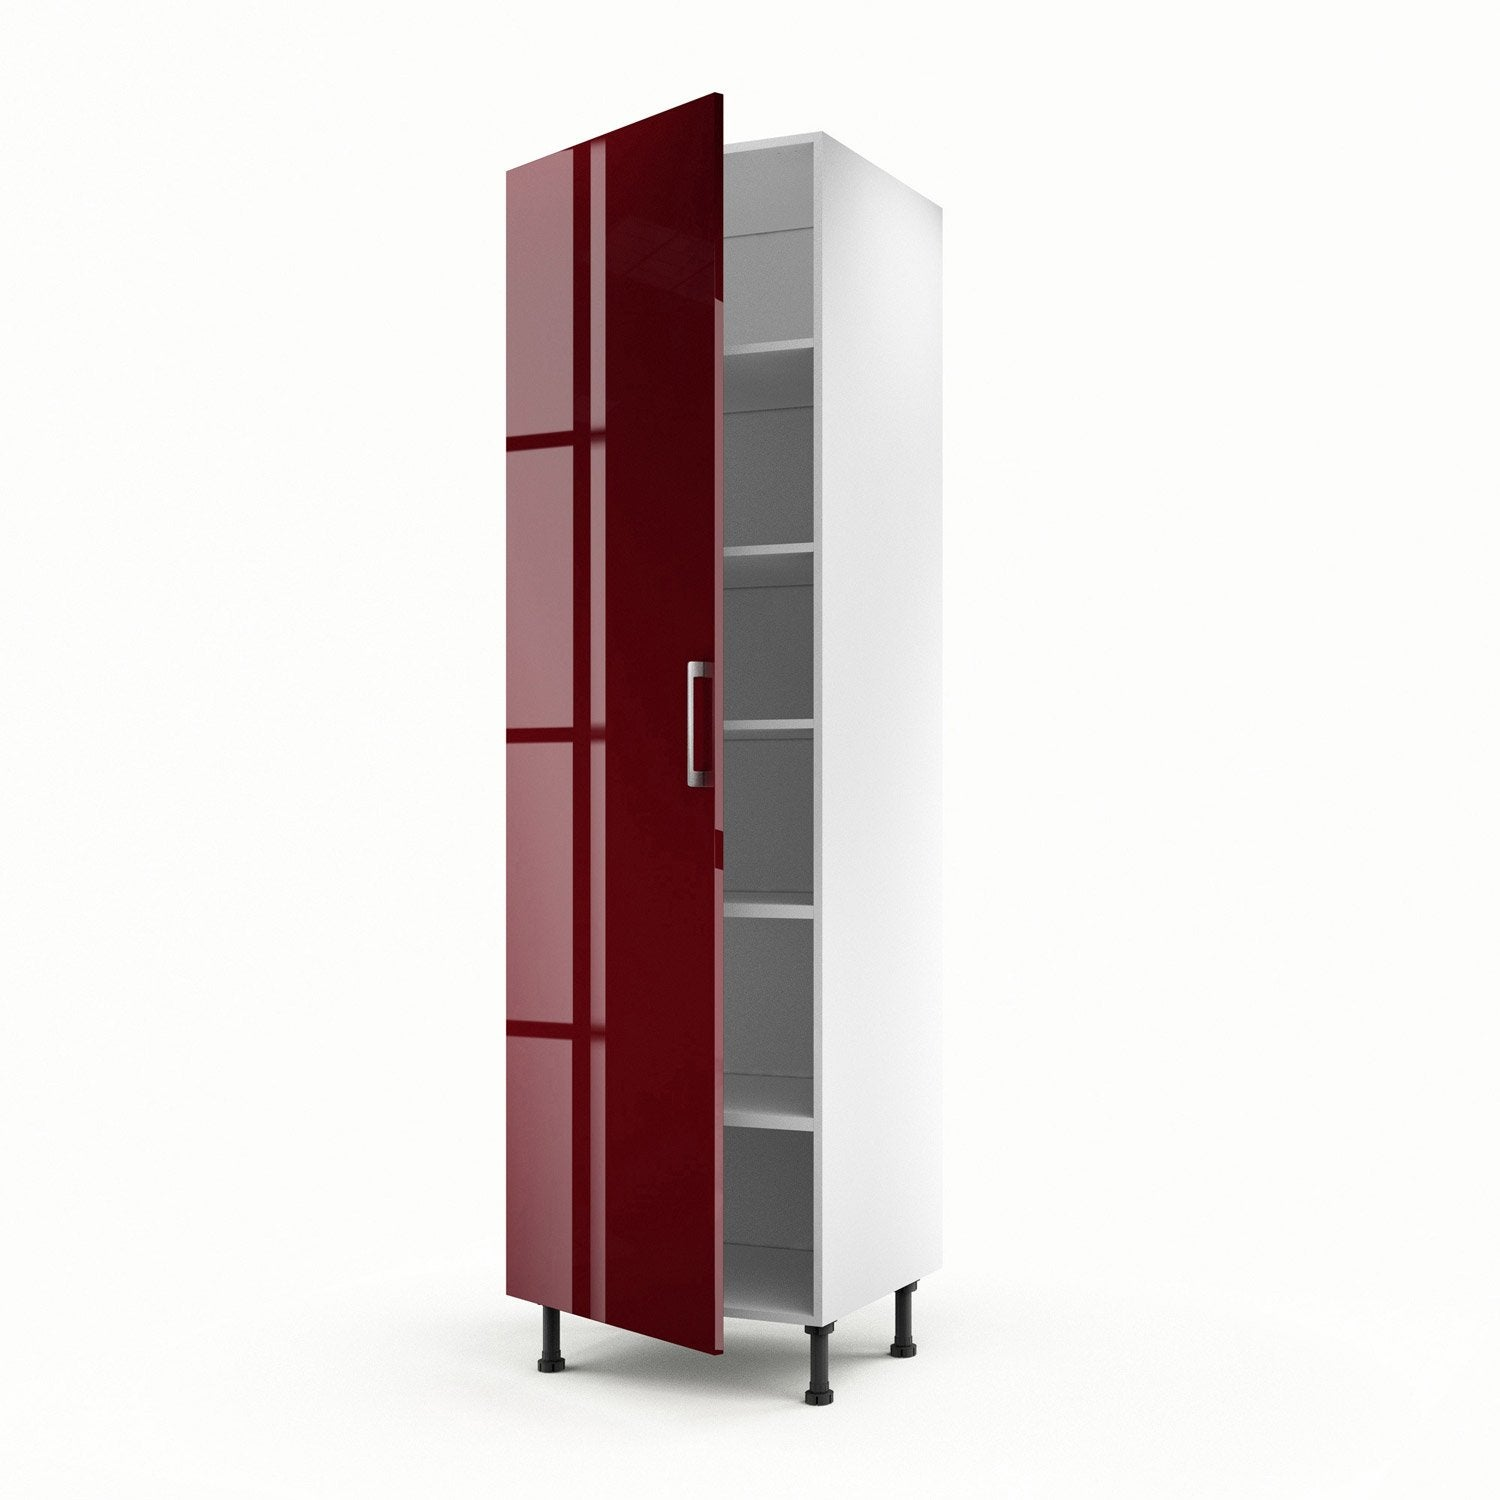 Meuble de cuisine colonne rouge 1 porte griotte x l for Porte de salon leroy merlin